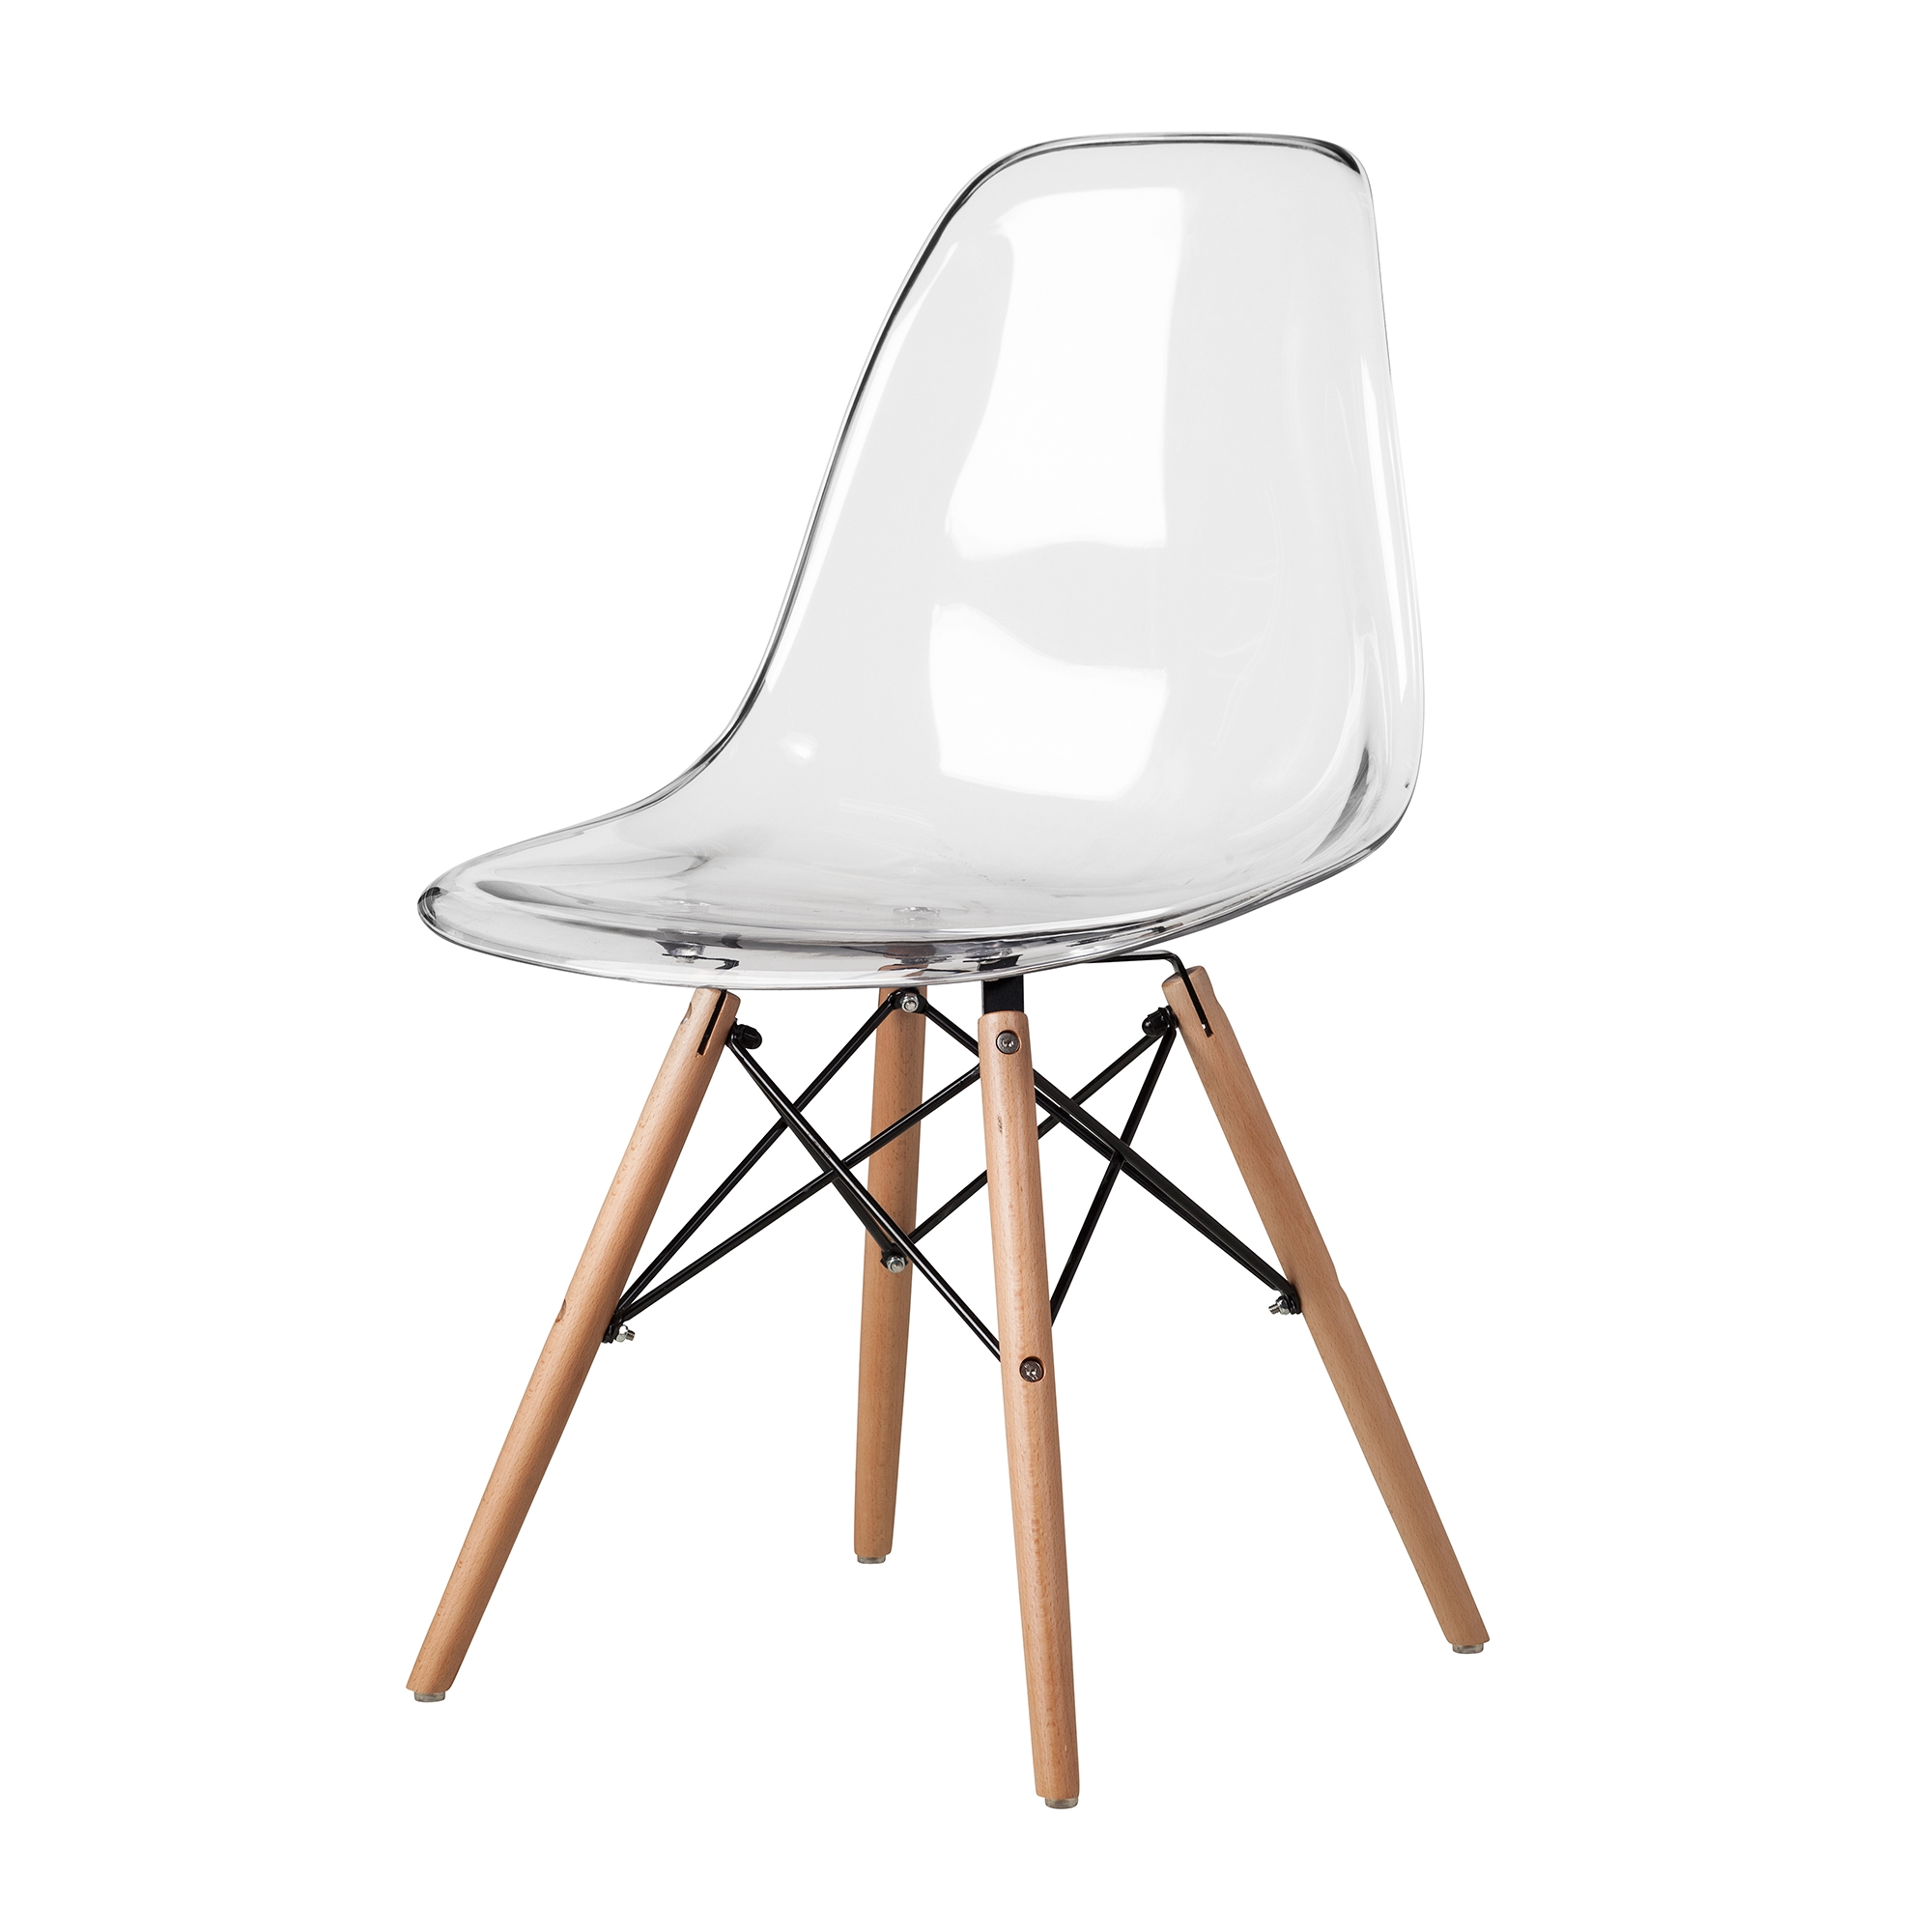 mid century modern plastic chairs acura mdx captains charles eames dsw side chair clear